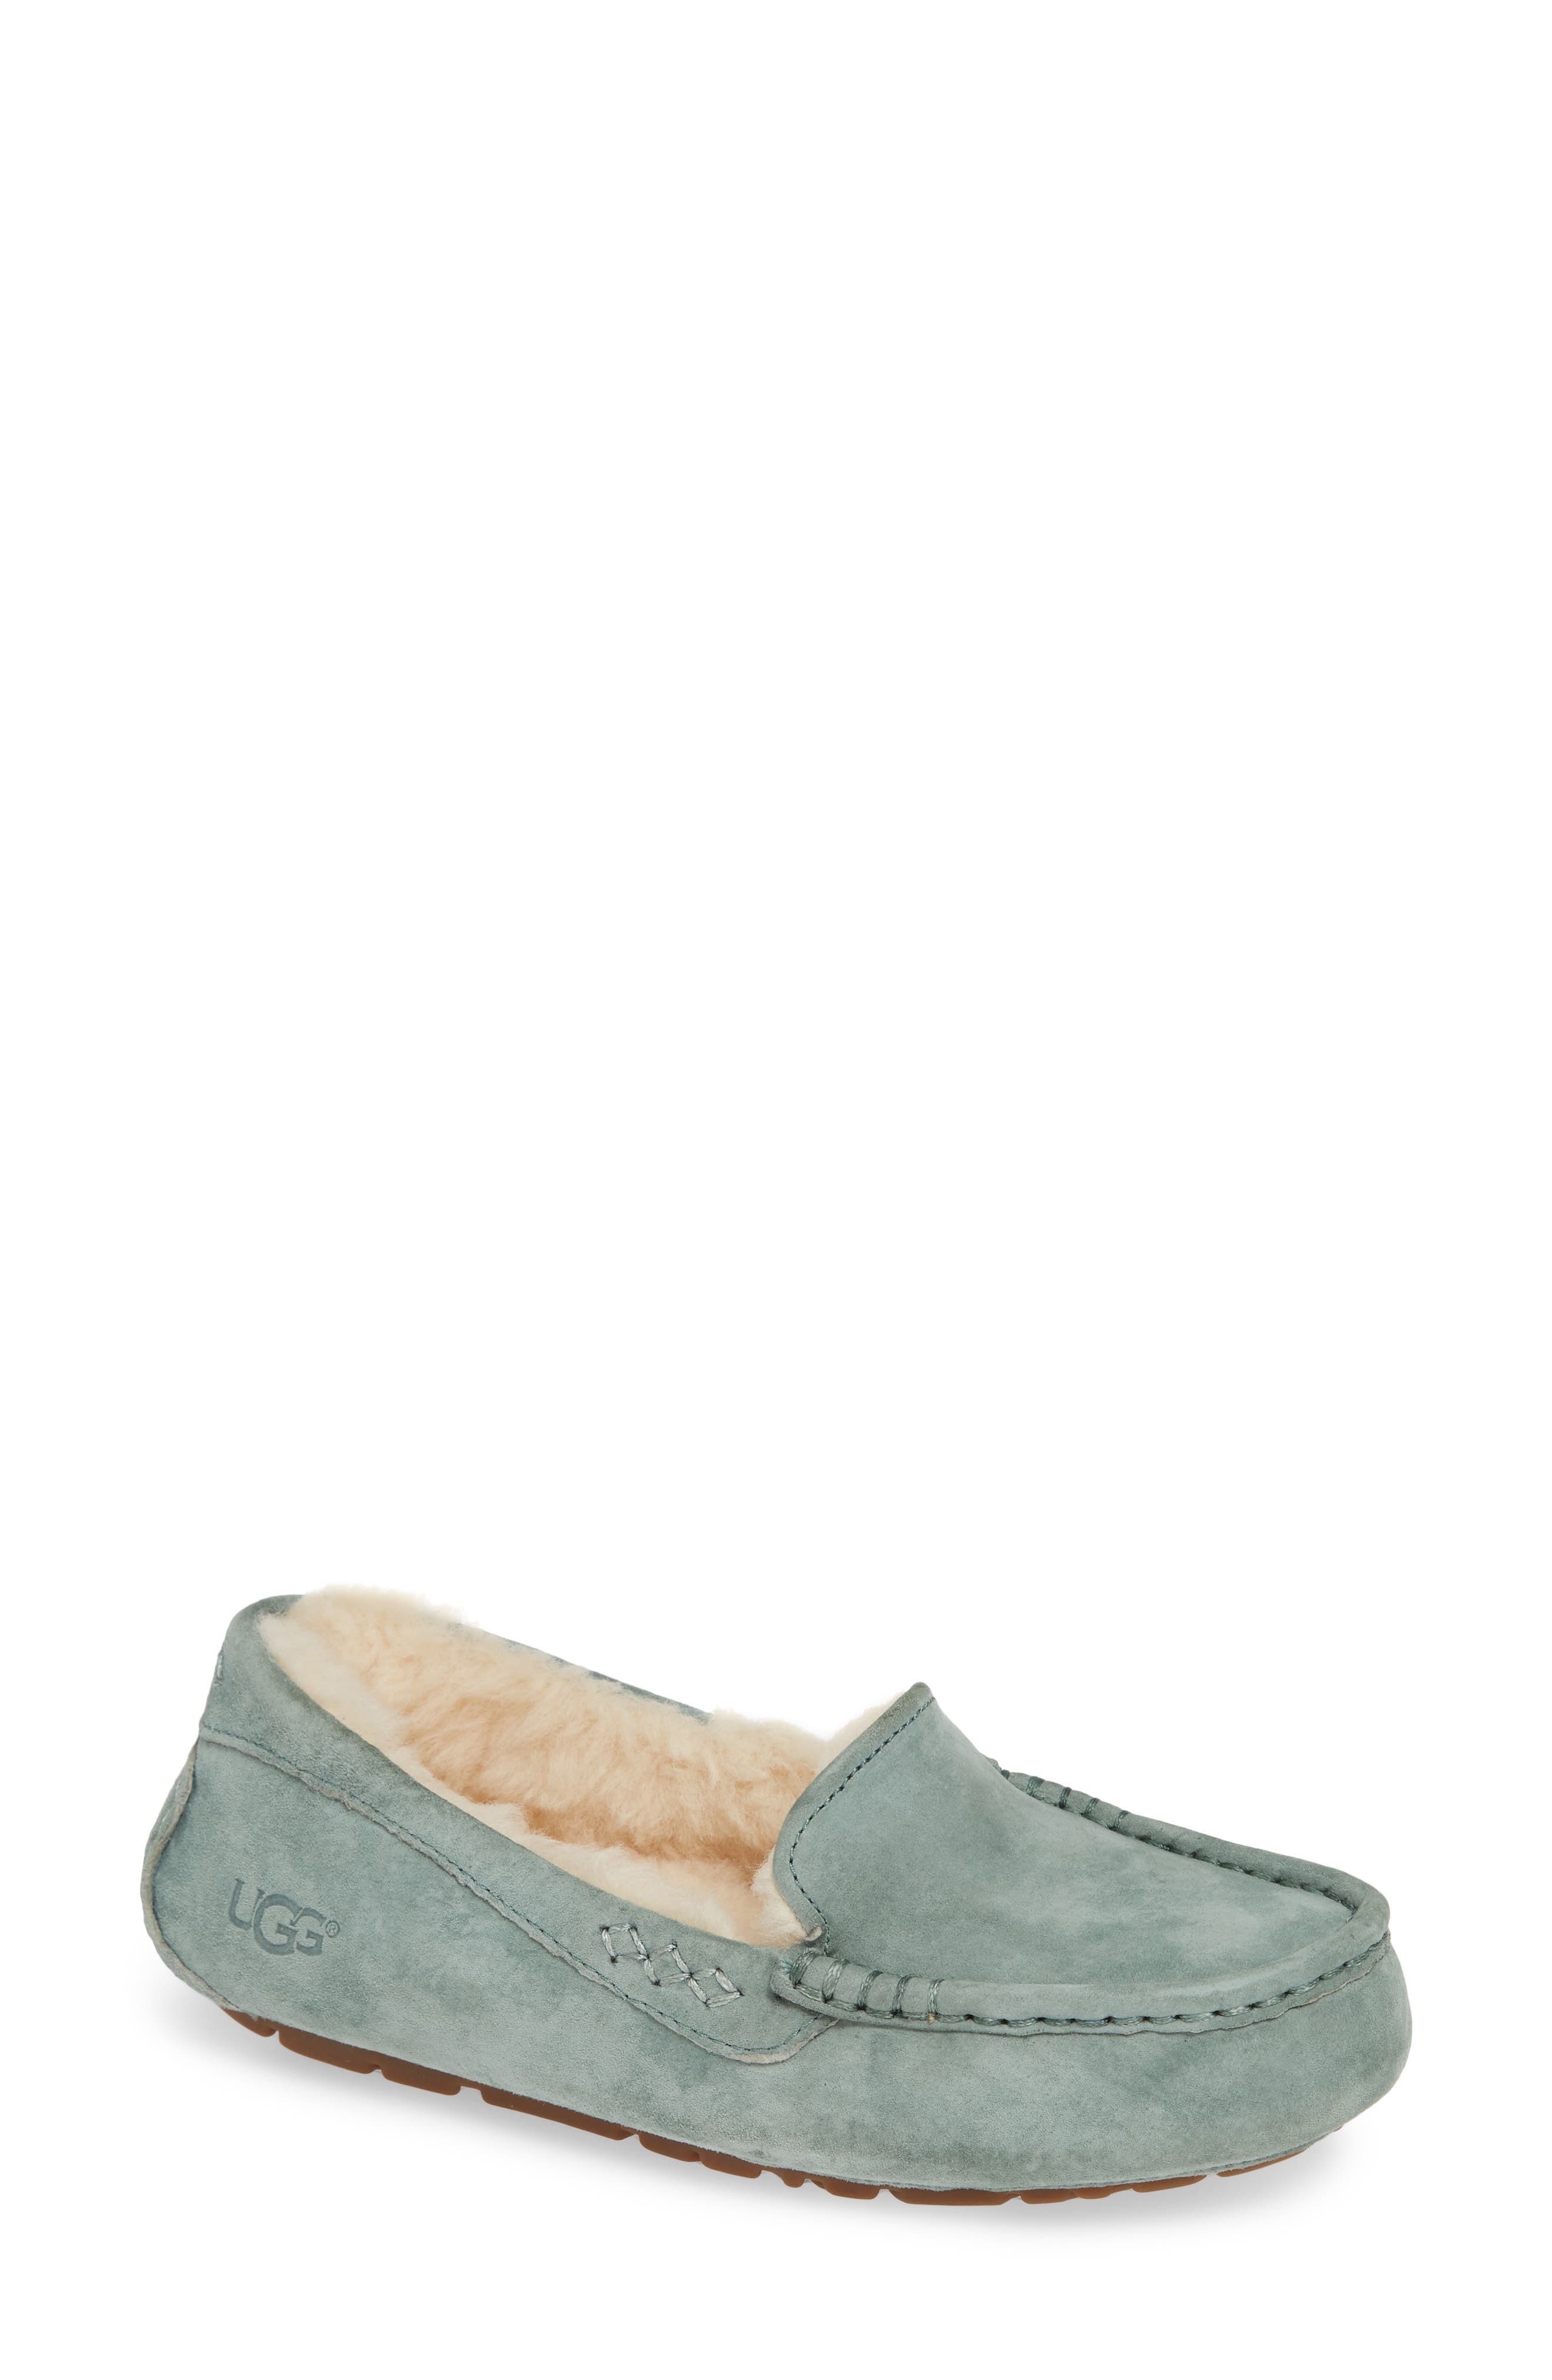 Ansley Water Resistant Slipper,                             Main thumbnail 1, color,                             Sea Green